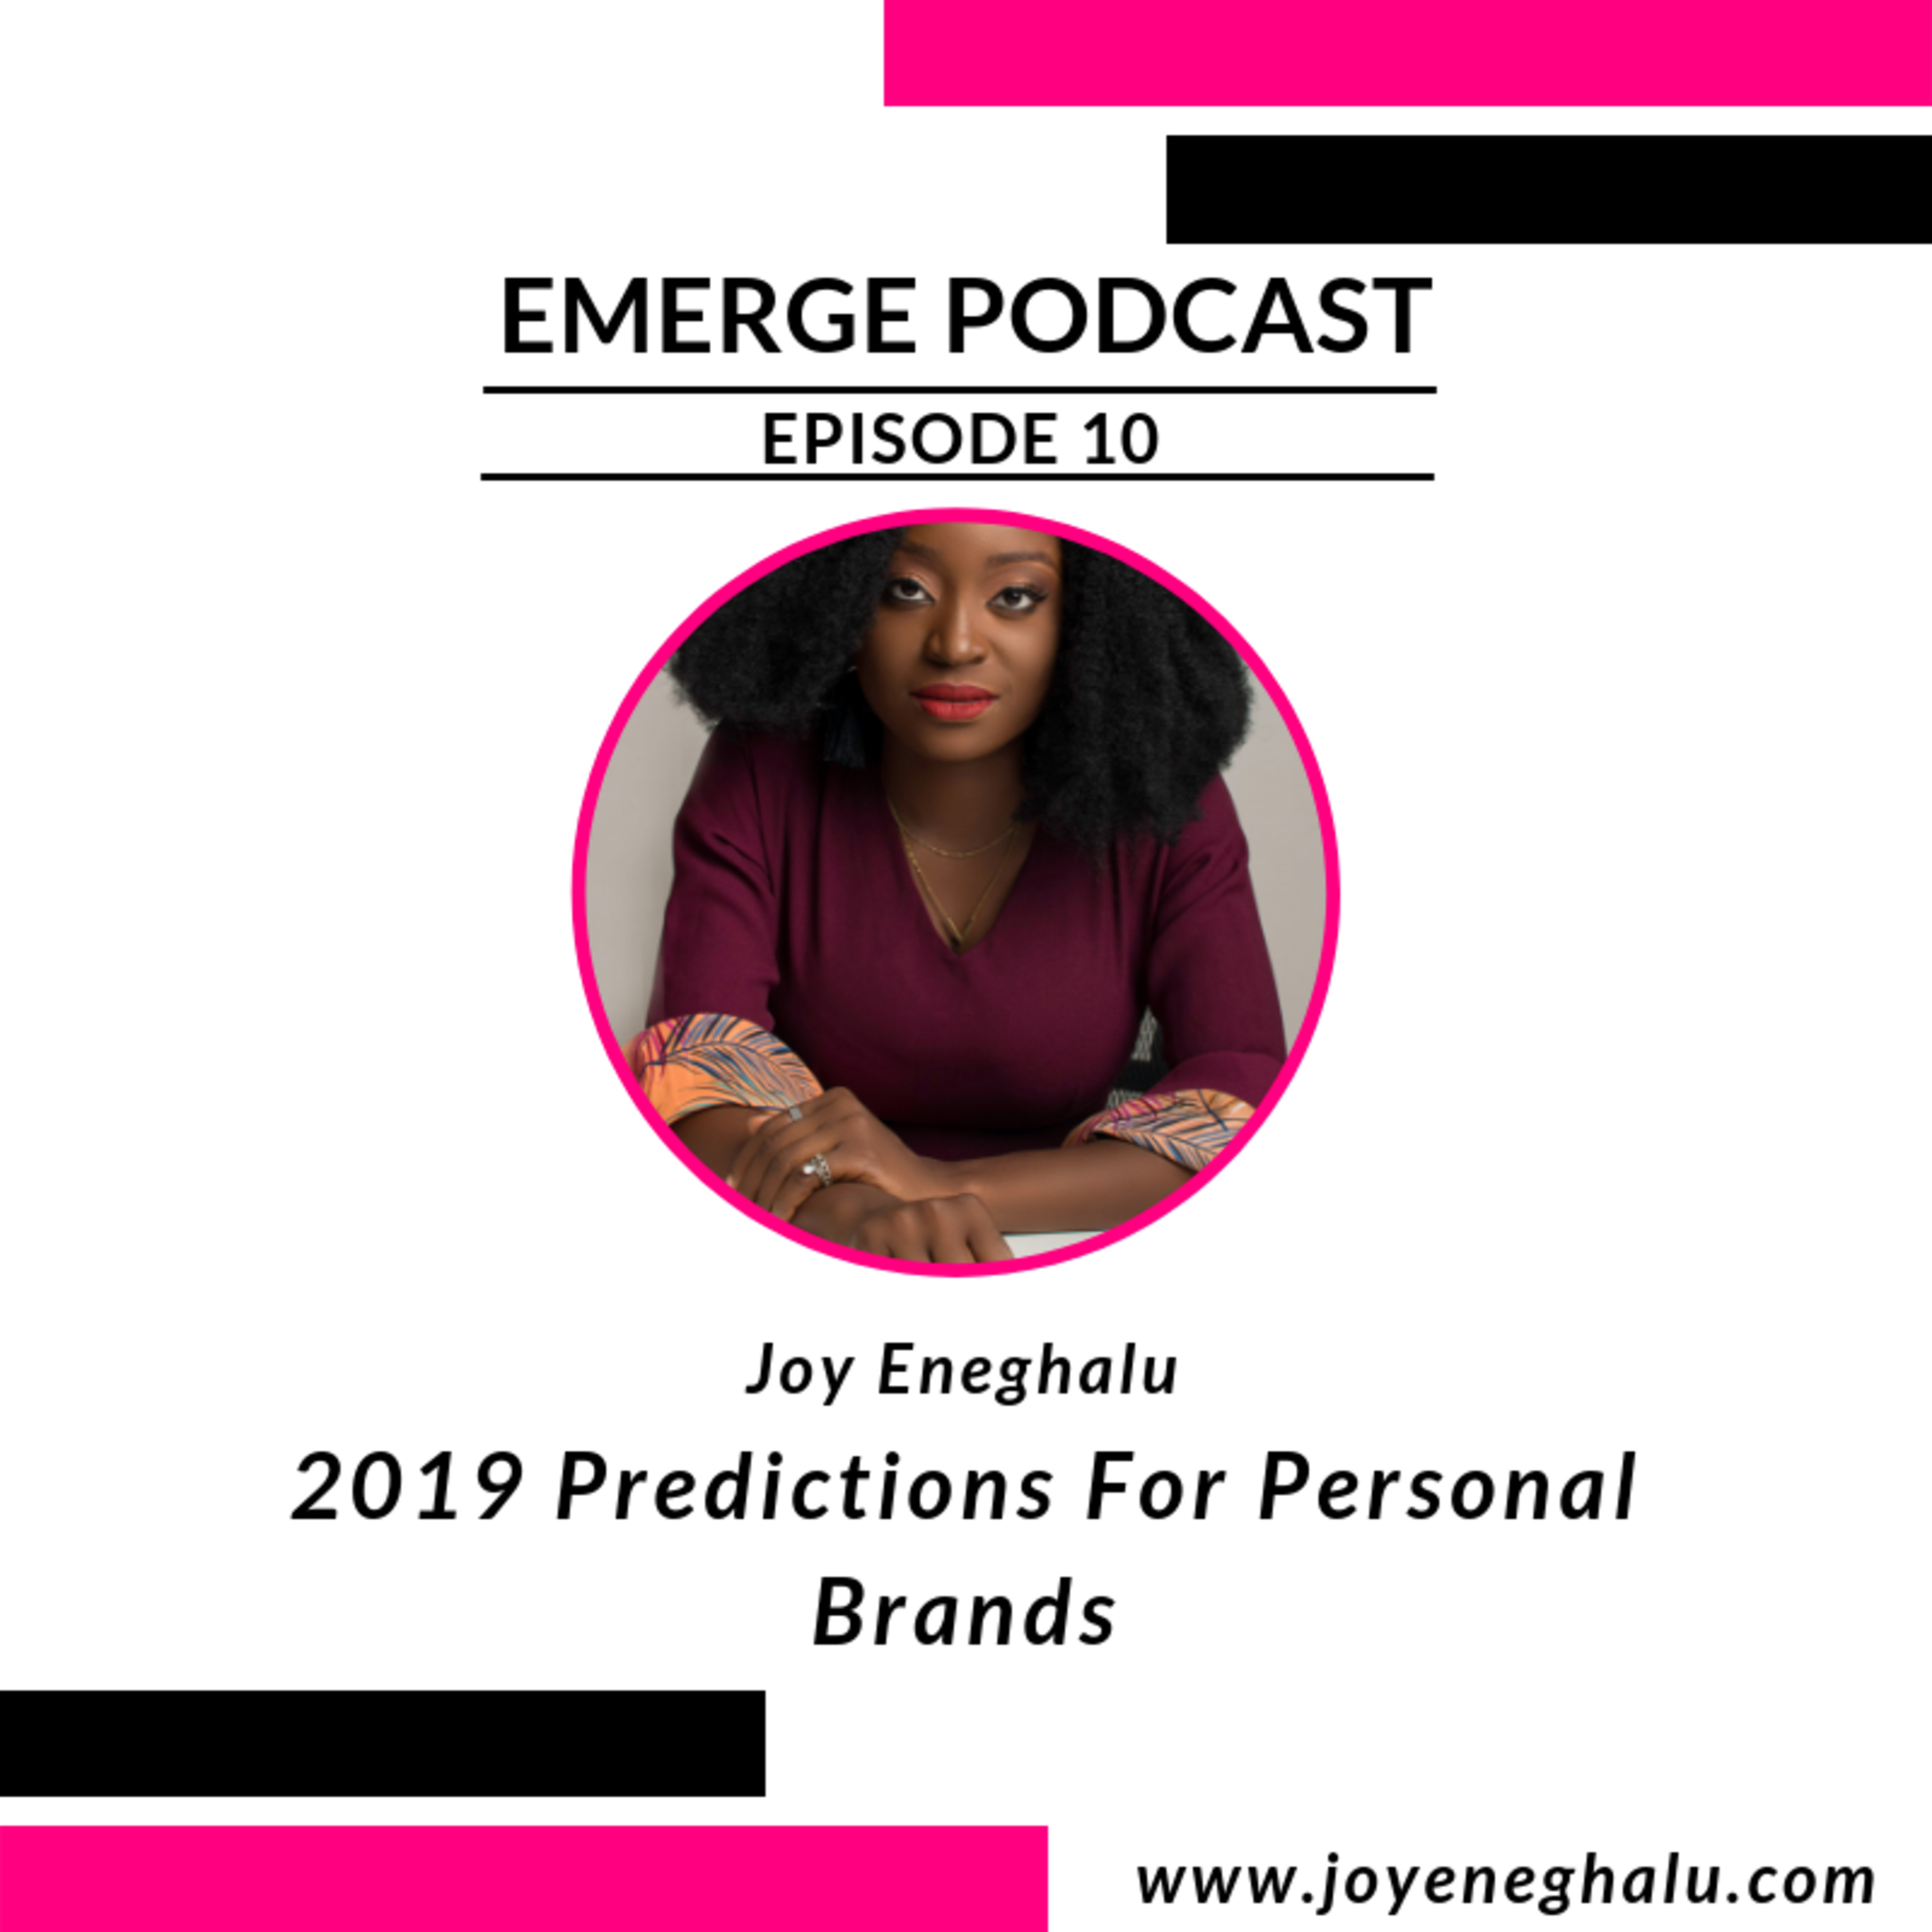 Episode 10 - 2019 Predictions For Personal Brands